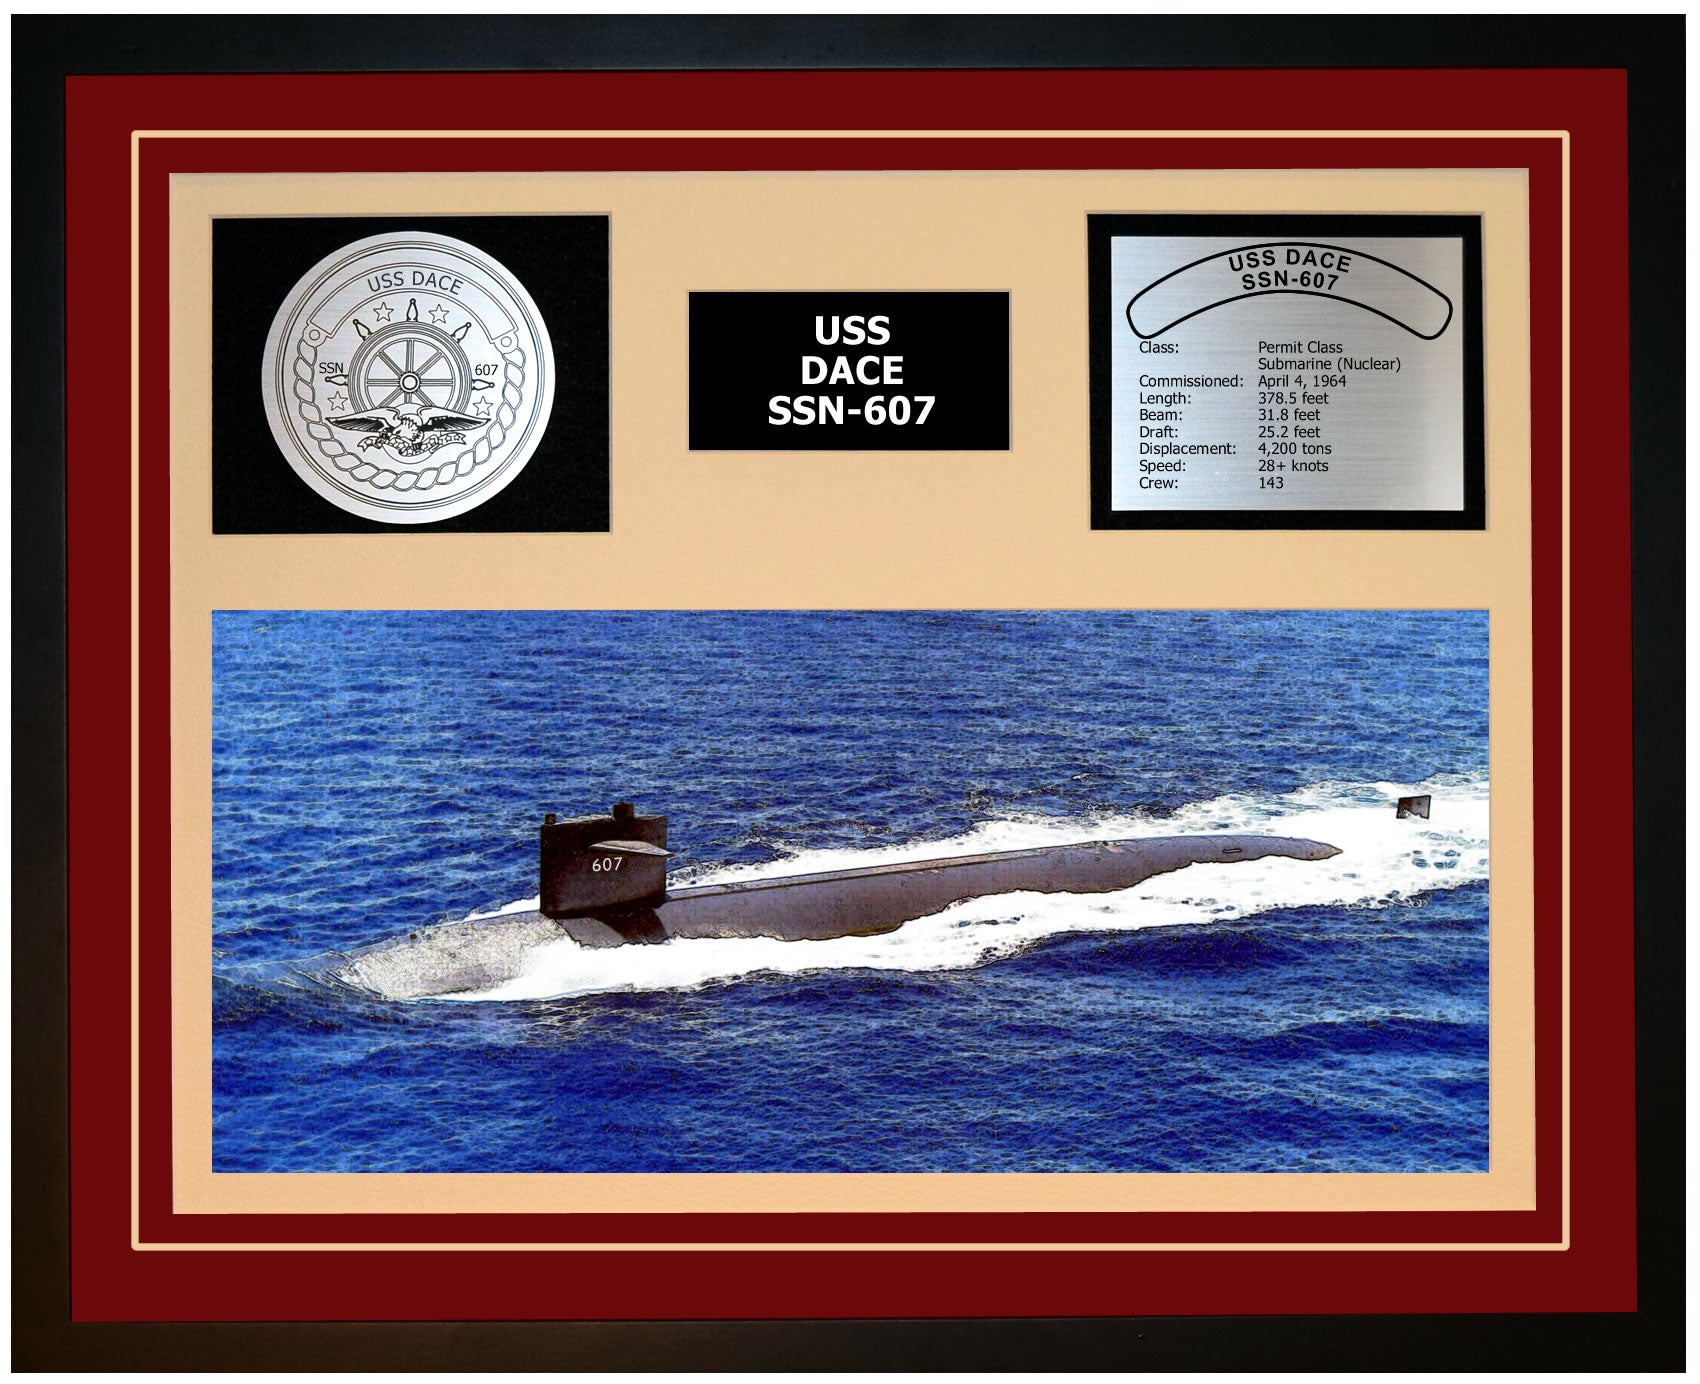 USS DACE SSN-607 Framed Navy Ship Display Burgundy